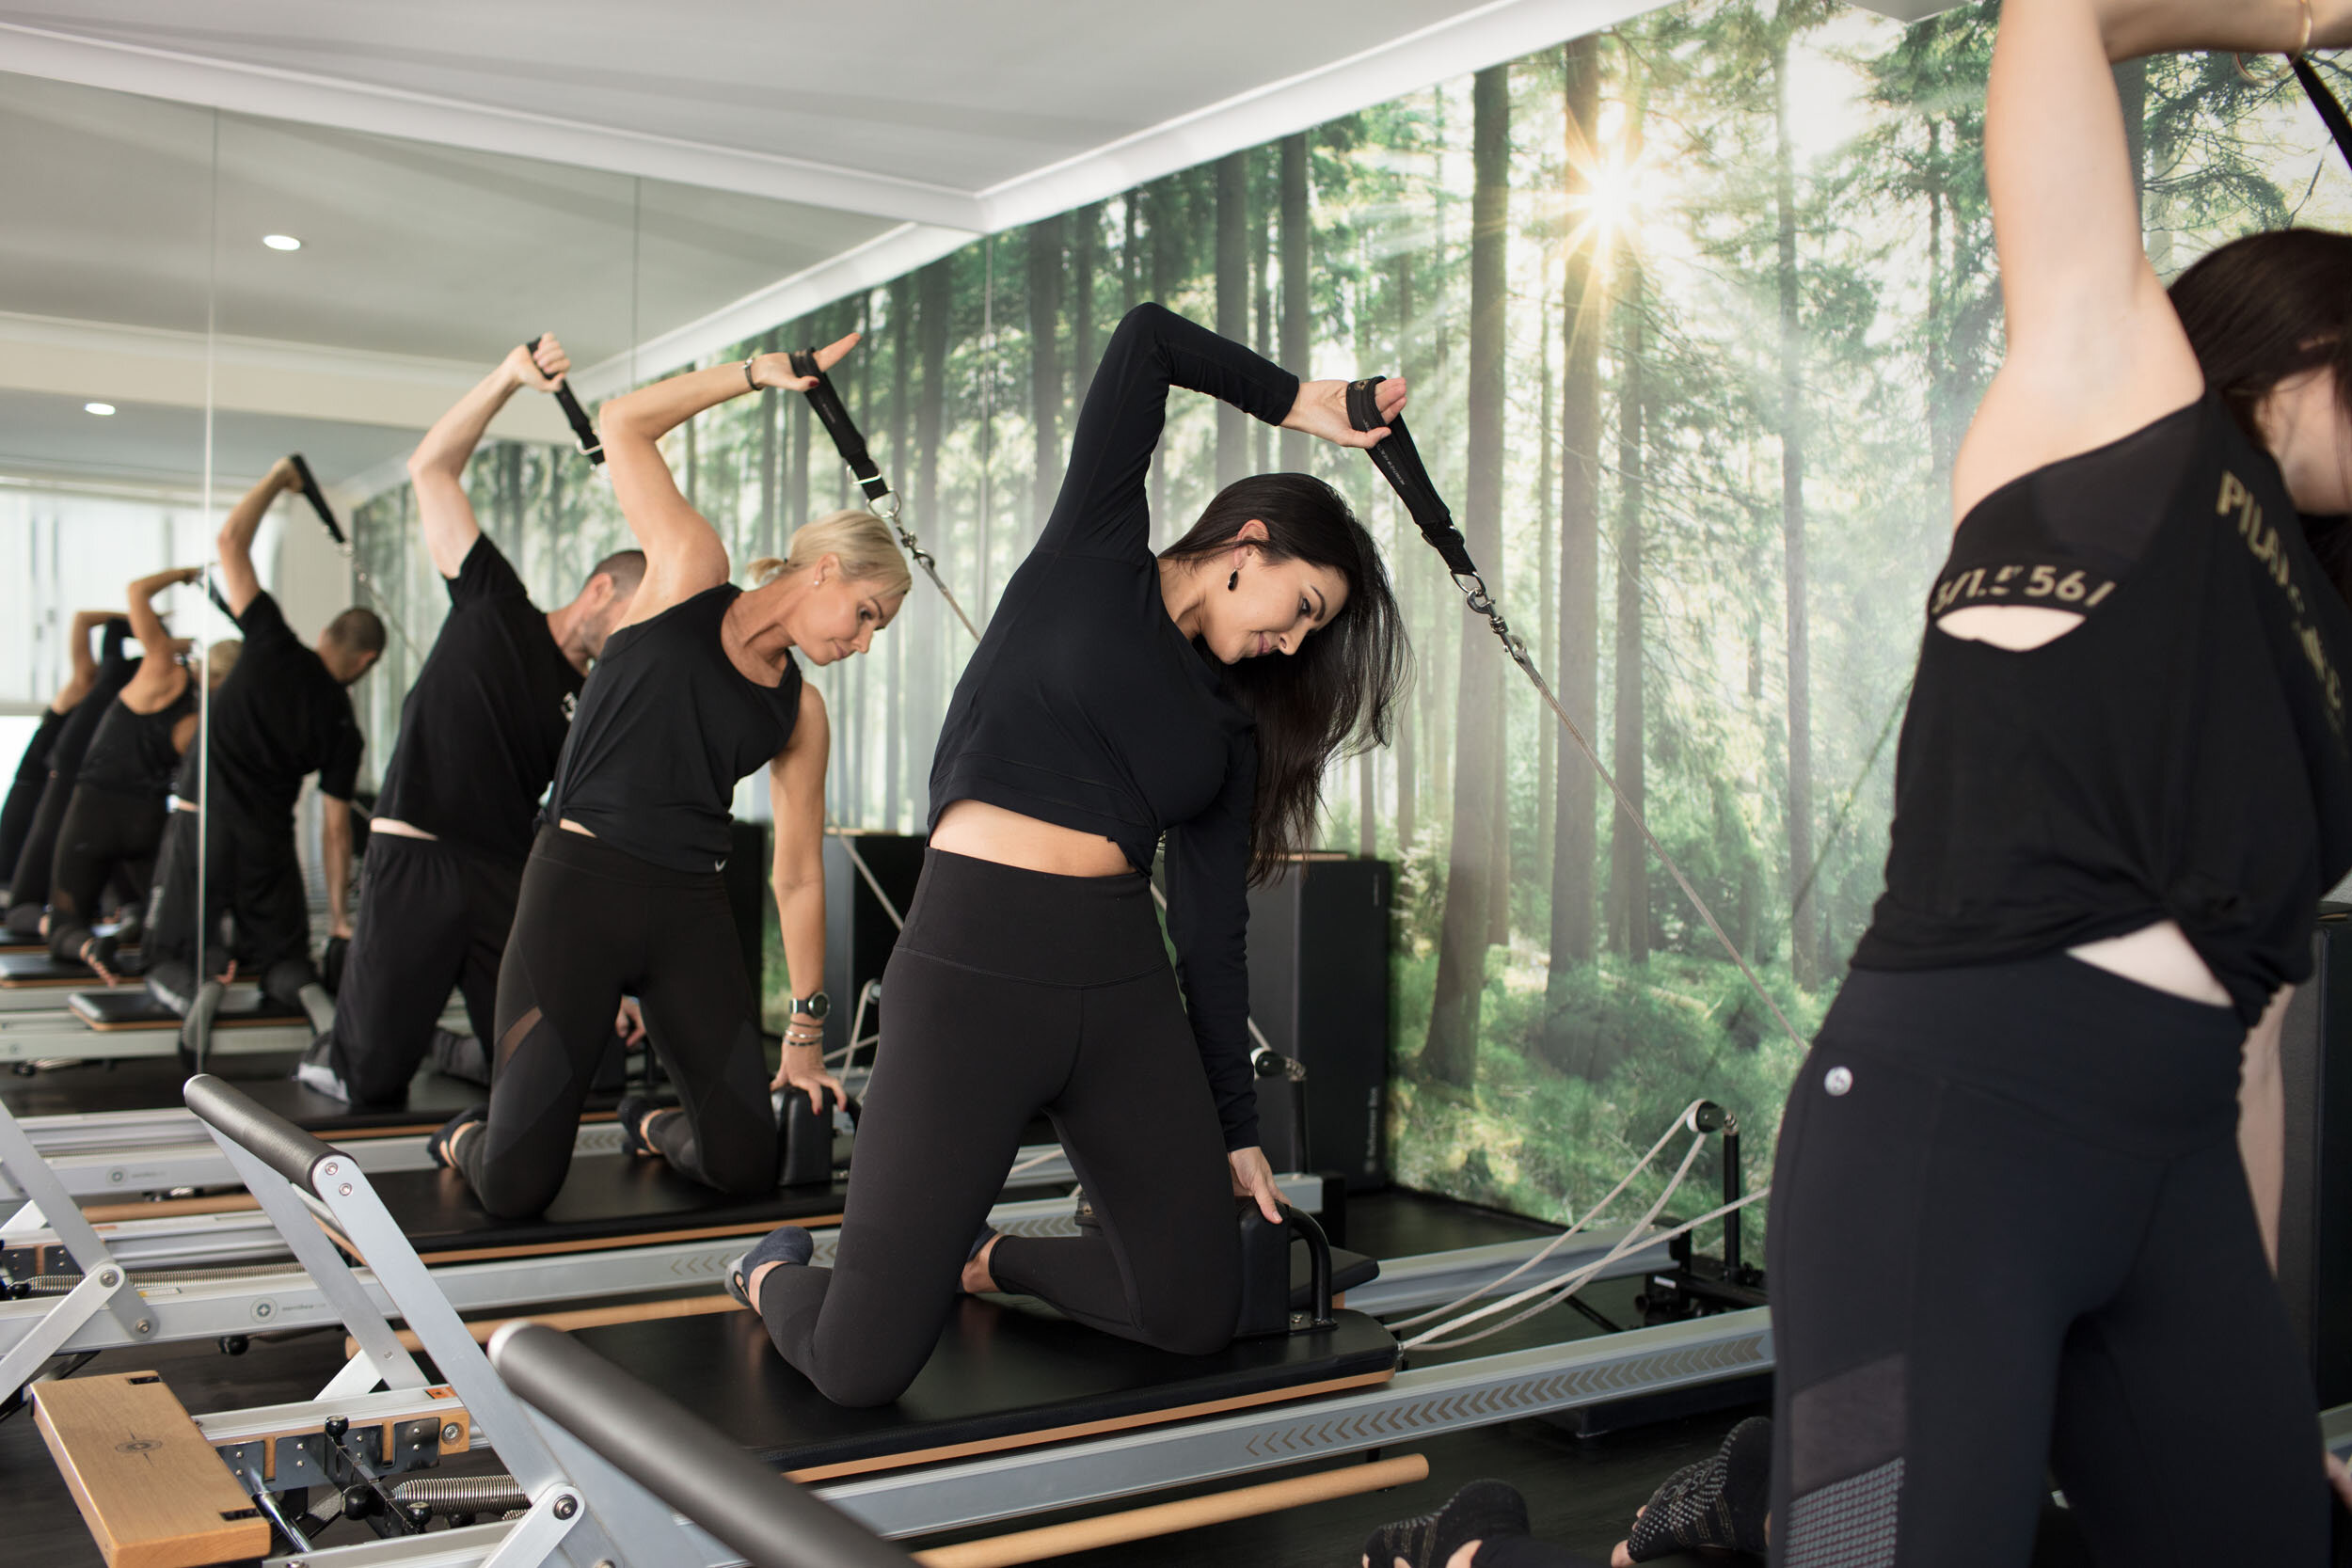 We hadn't tried reformer Pilates before, so we were a little. The team are so kind and supportive – they helped us every step of the way and transformed our confidence.